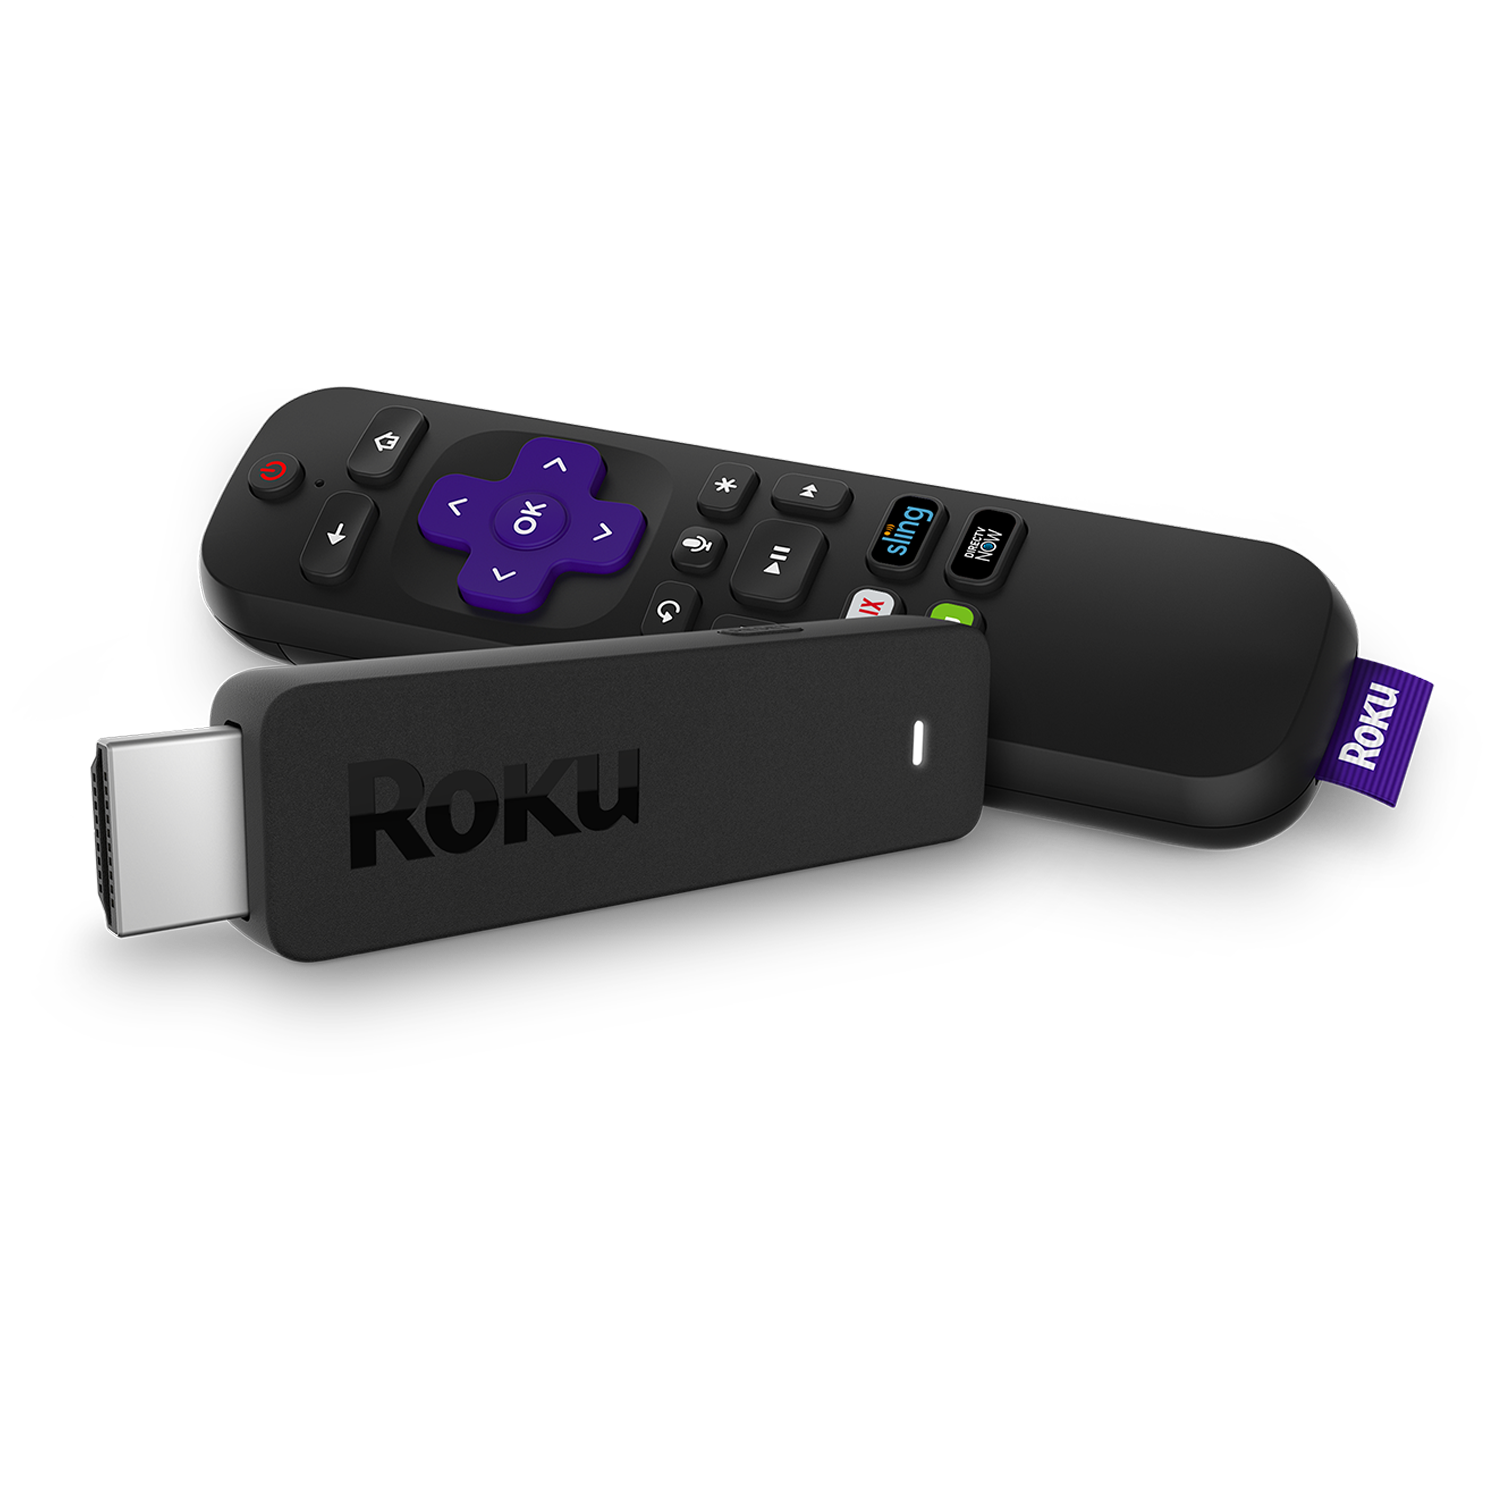 how to connect roku stick to tv